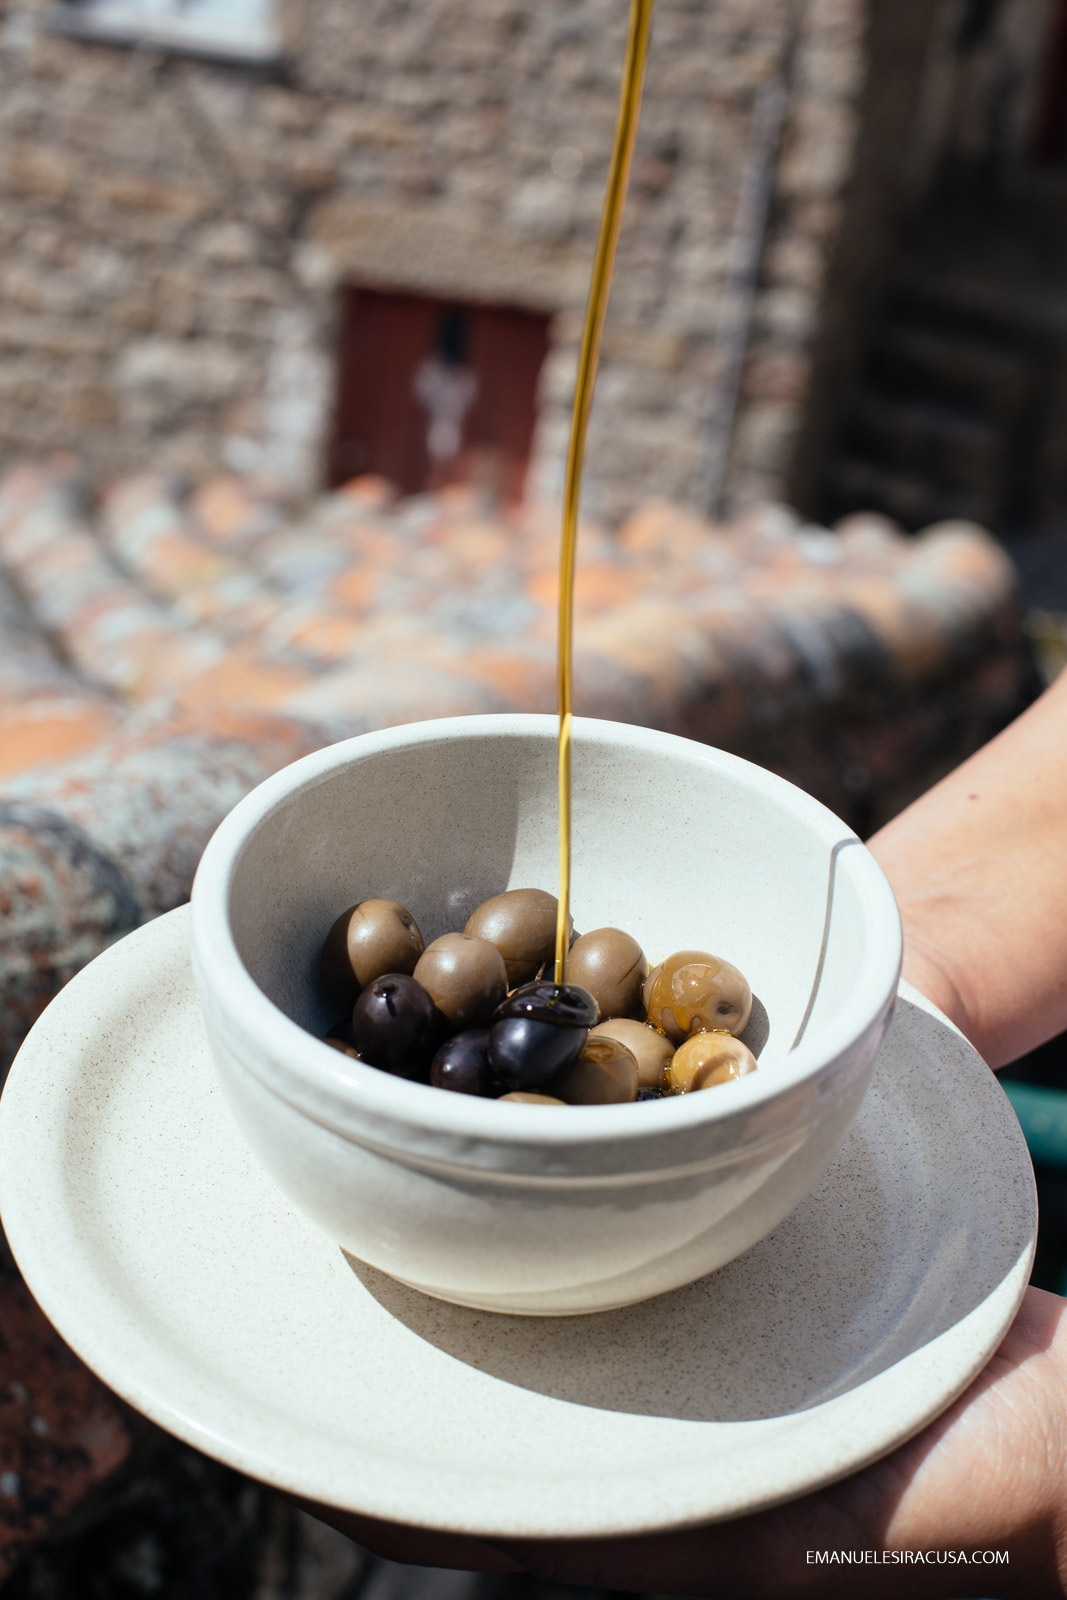 Olive oil is poured on olives, 2016